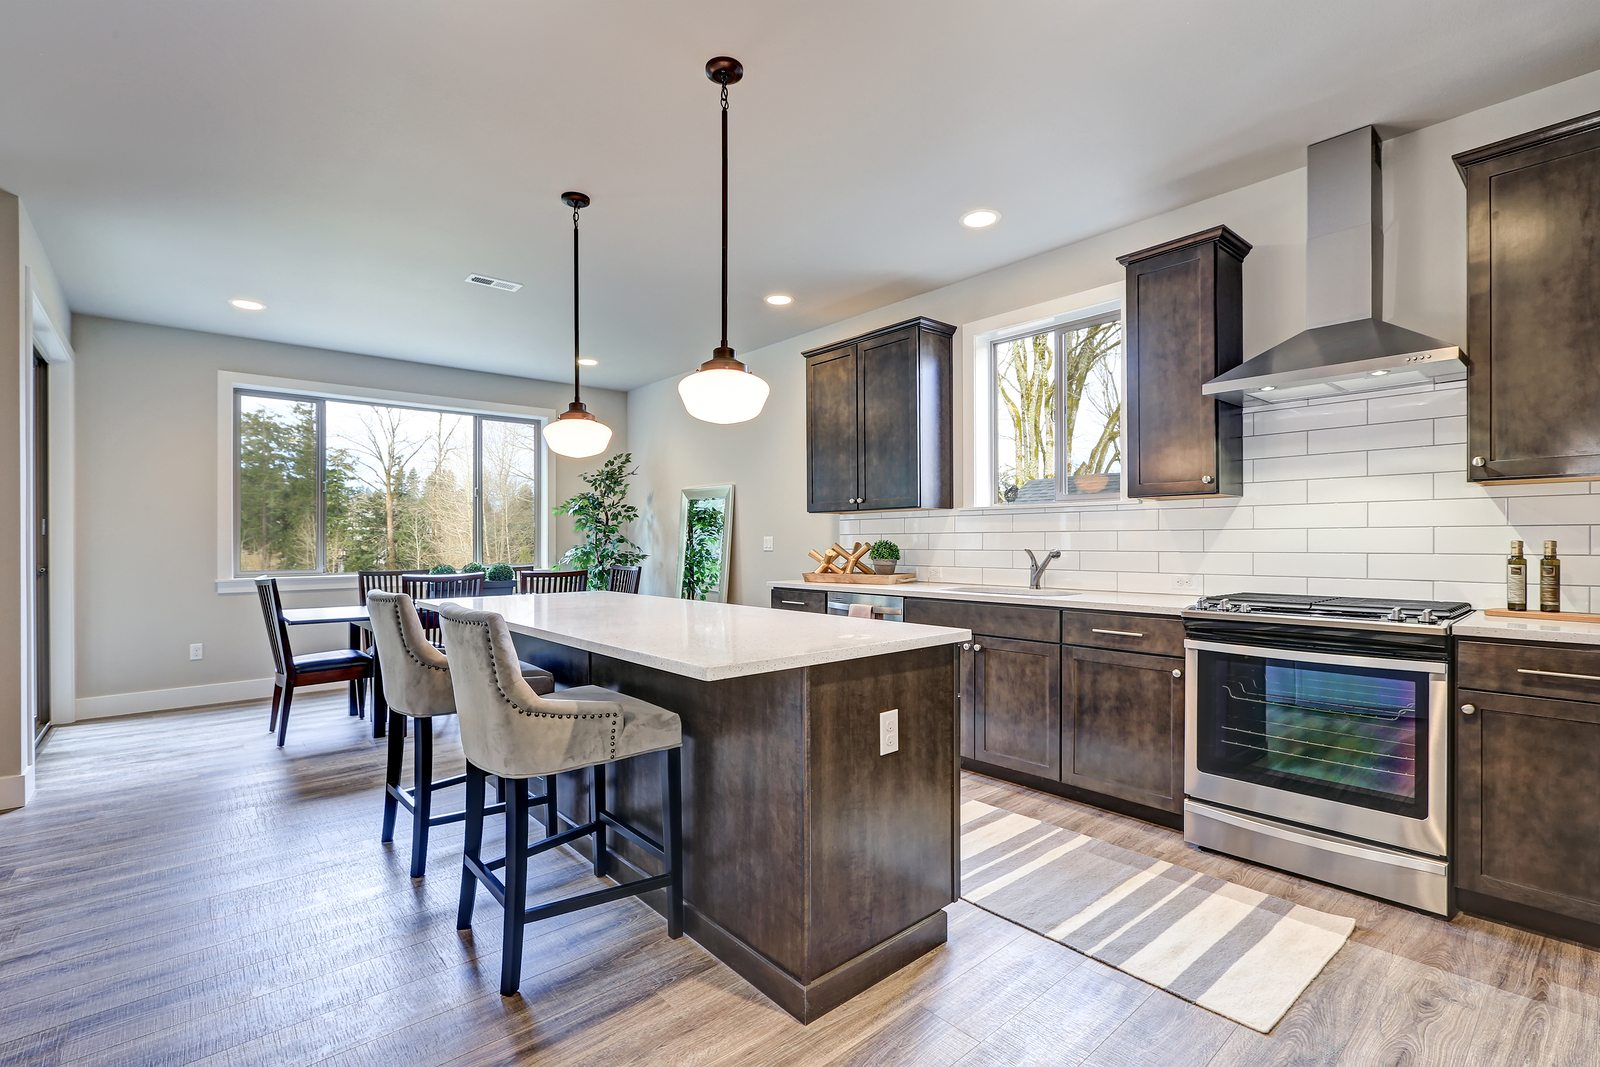 New kitchen boasts dark wood cabinets white backsplash subway tile and over sized island with white and grey quartz counter illuminated by pendant lights. Northwest USA